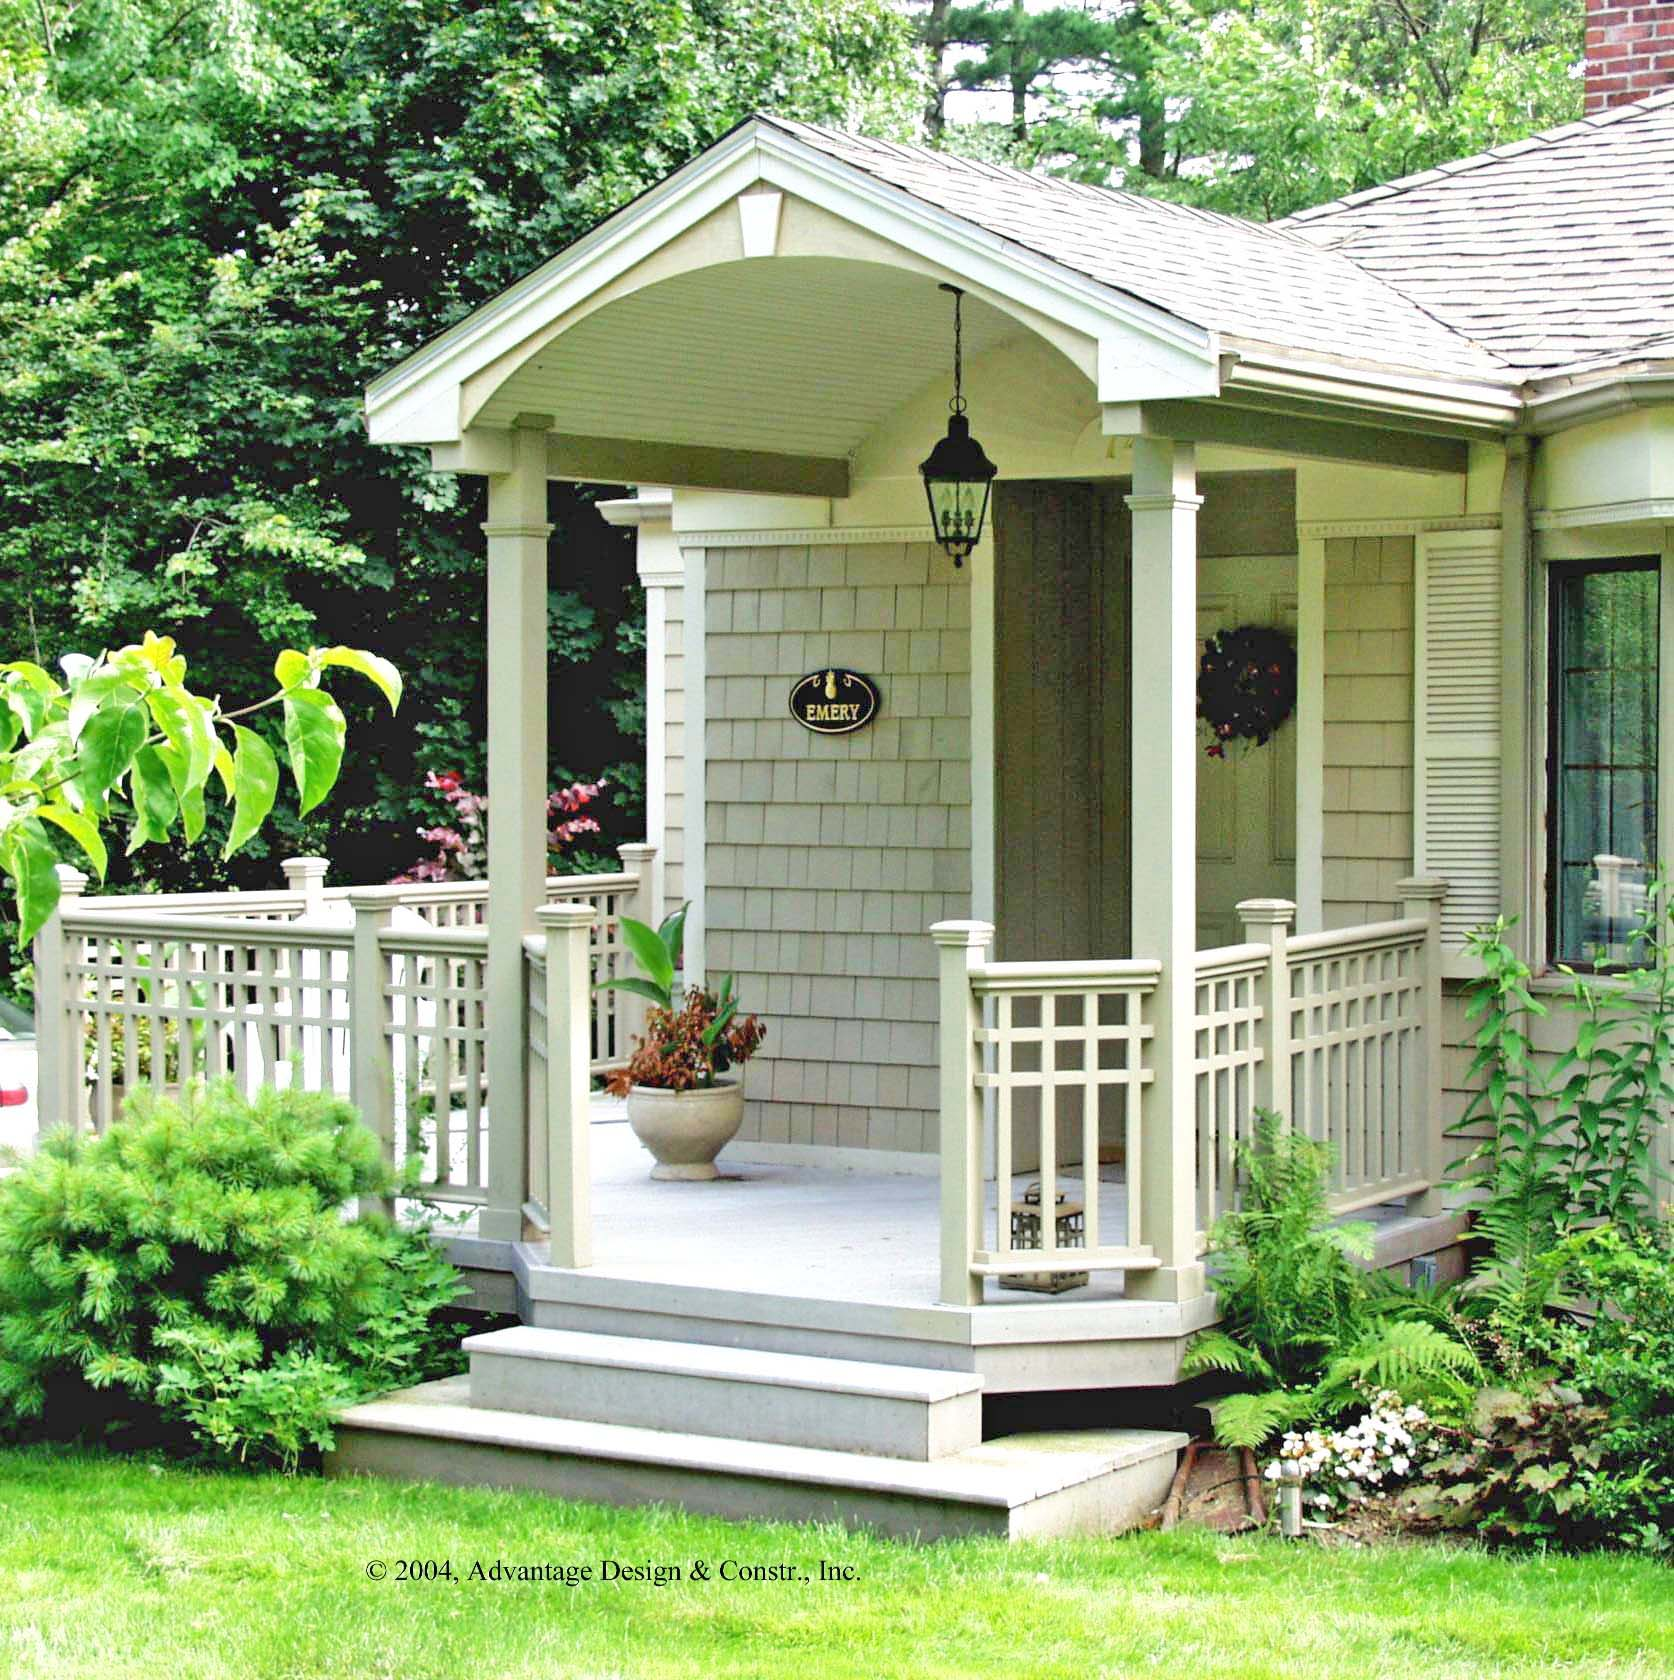 Outstanding Six Kinds Of Porches For Your Home Suburban Boston Decks And Largest Home Design Picture Inspirations Pitcheantrous